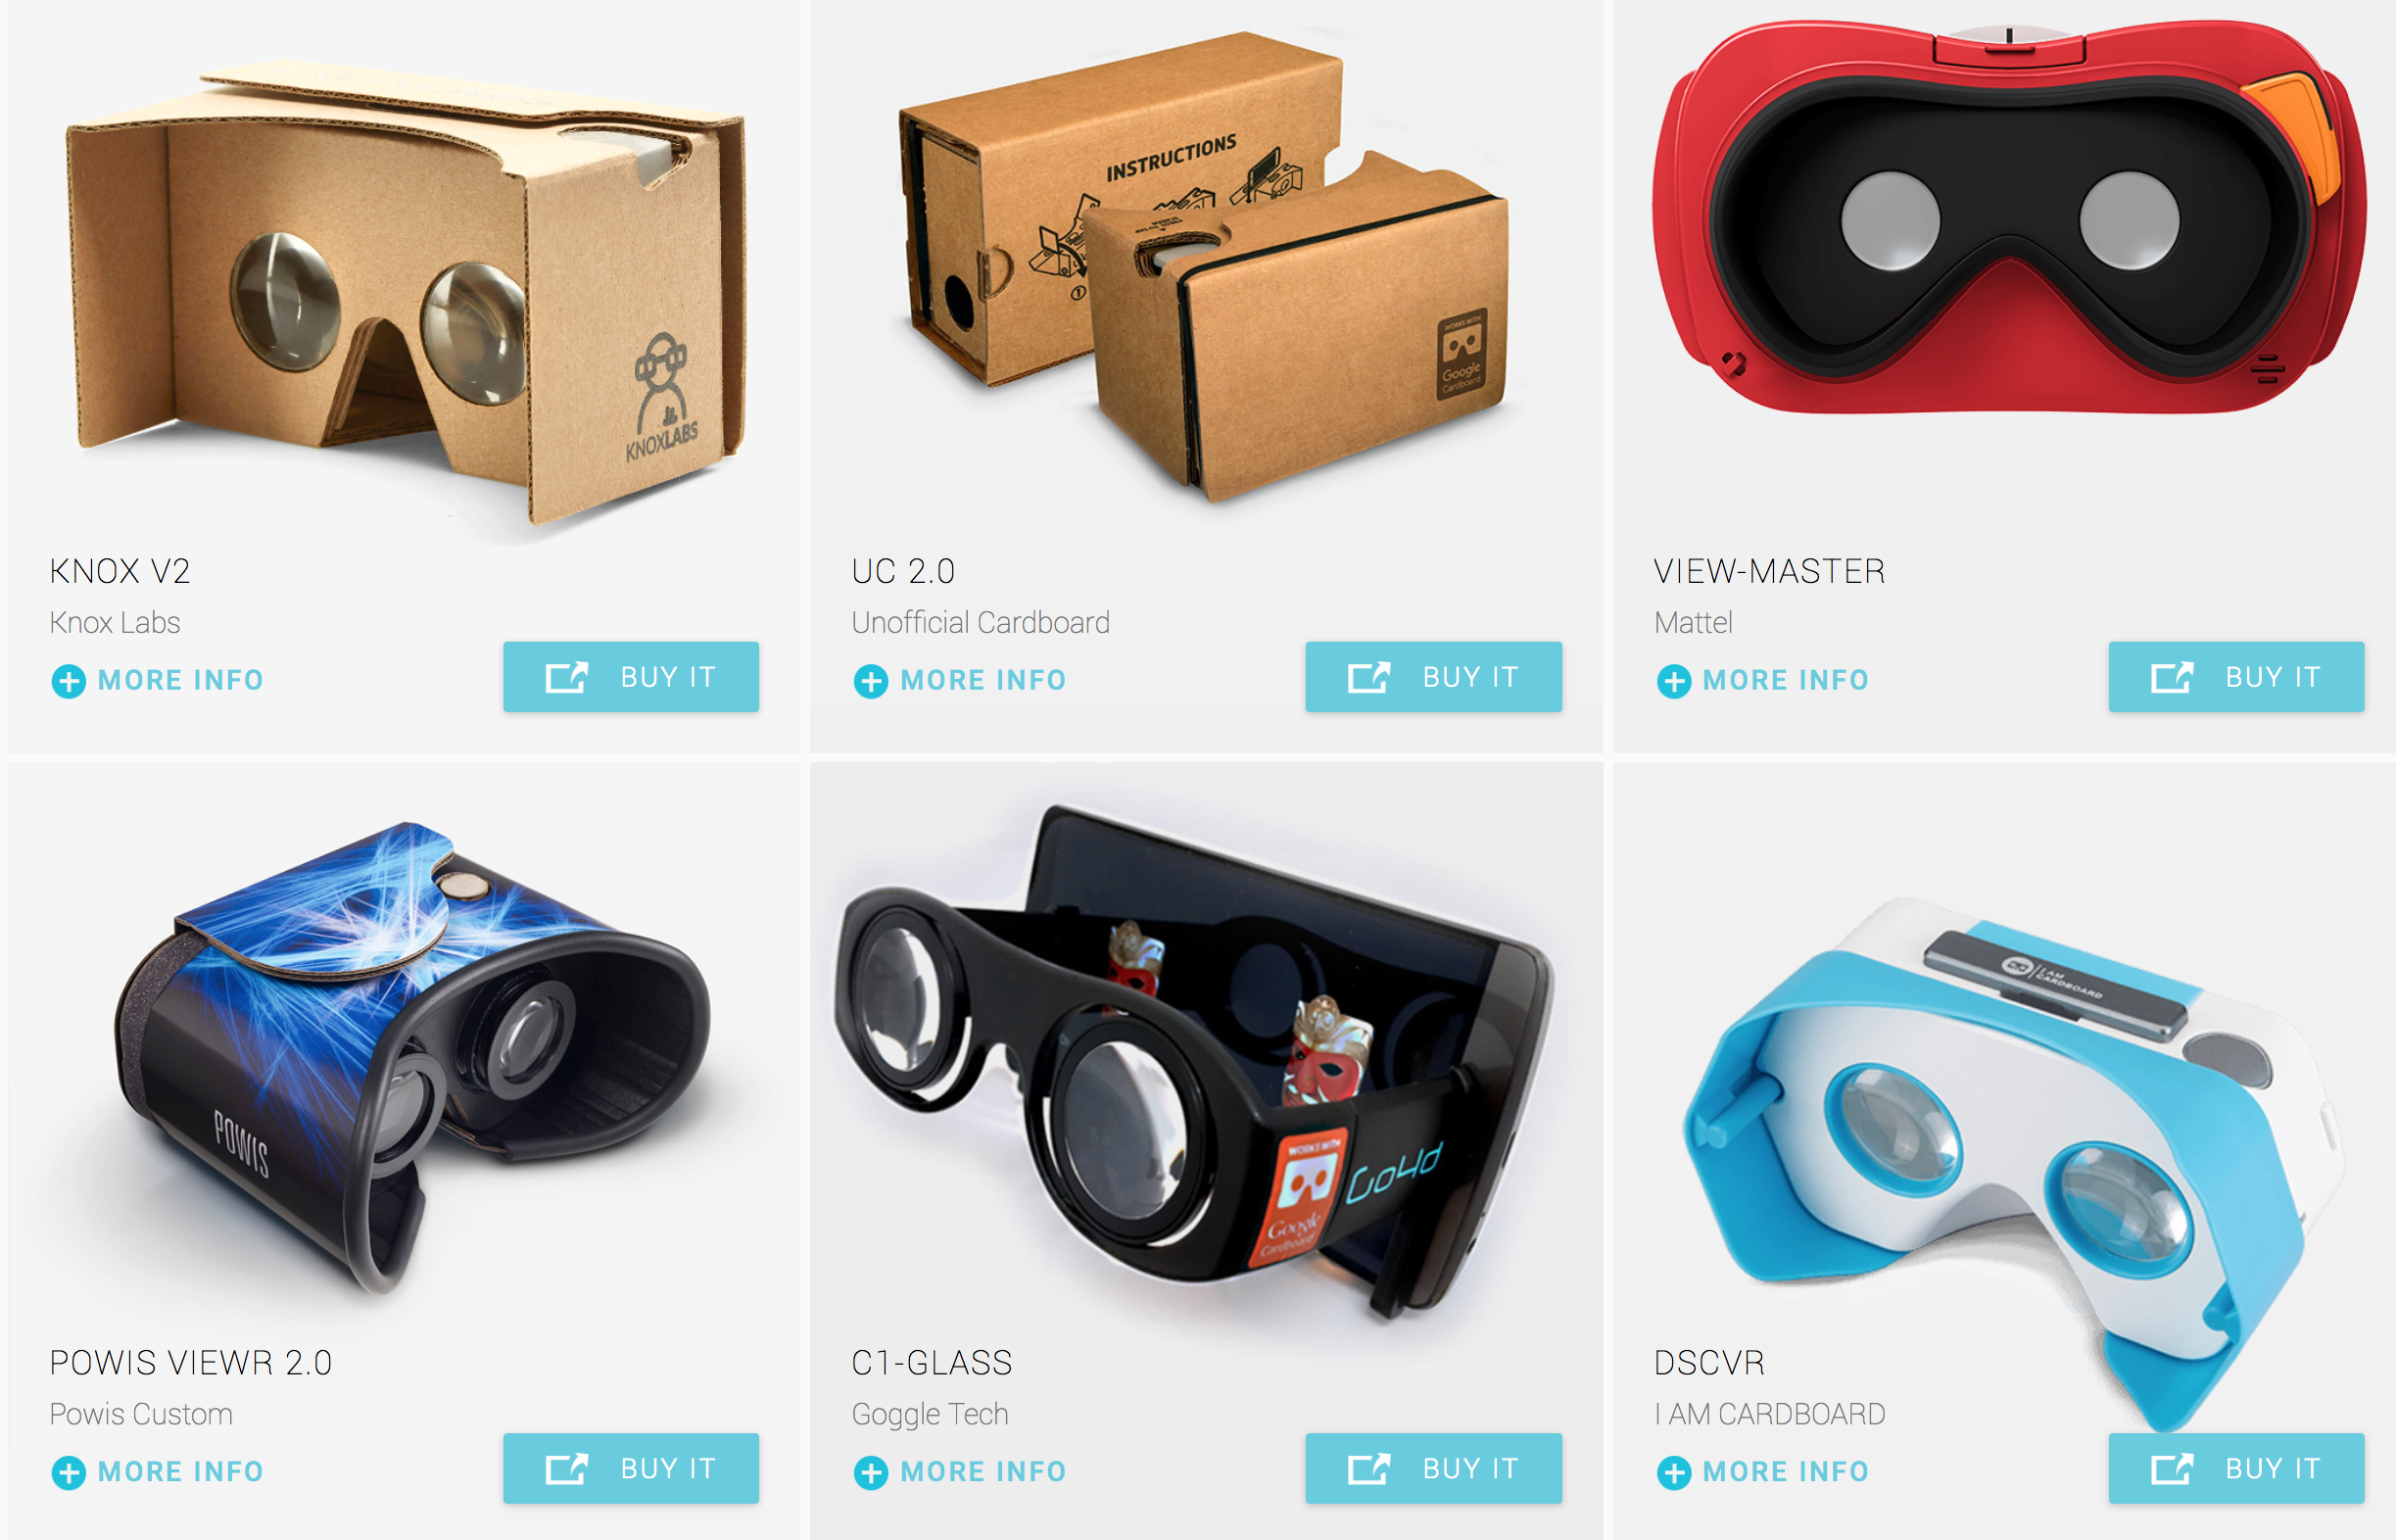 Google Cardboard comes in a variety of options